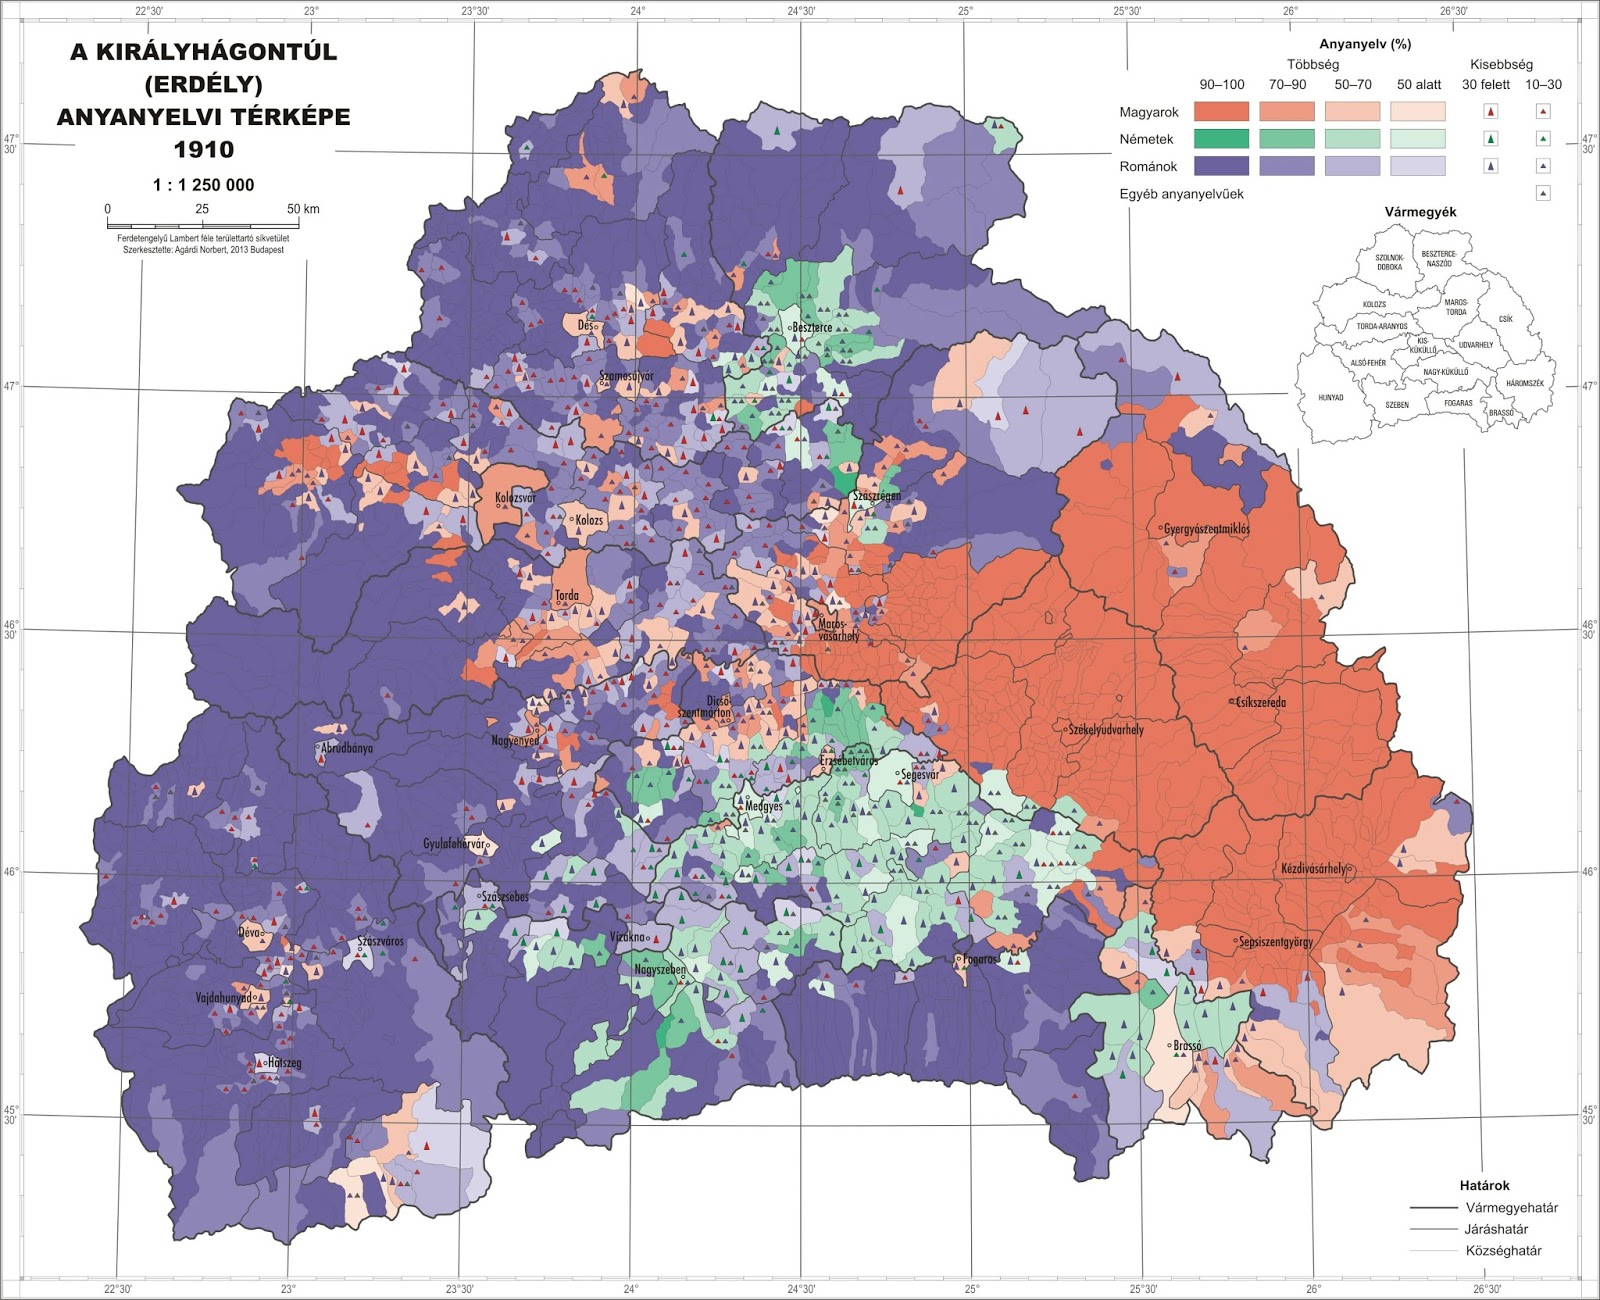 Linguistic composition of Transylvania by municipality (1910)